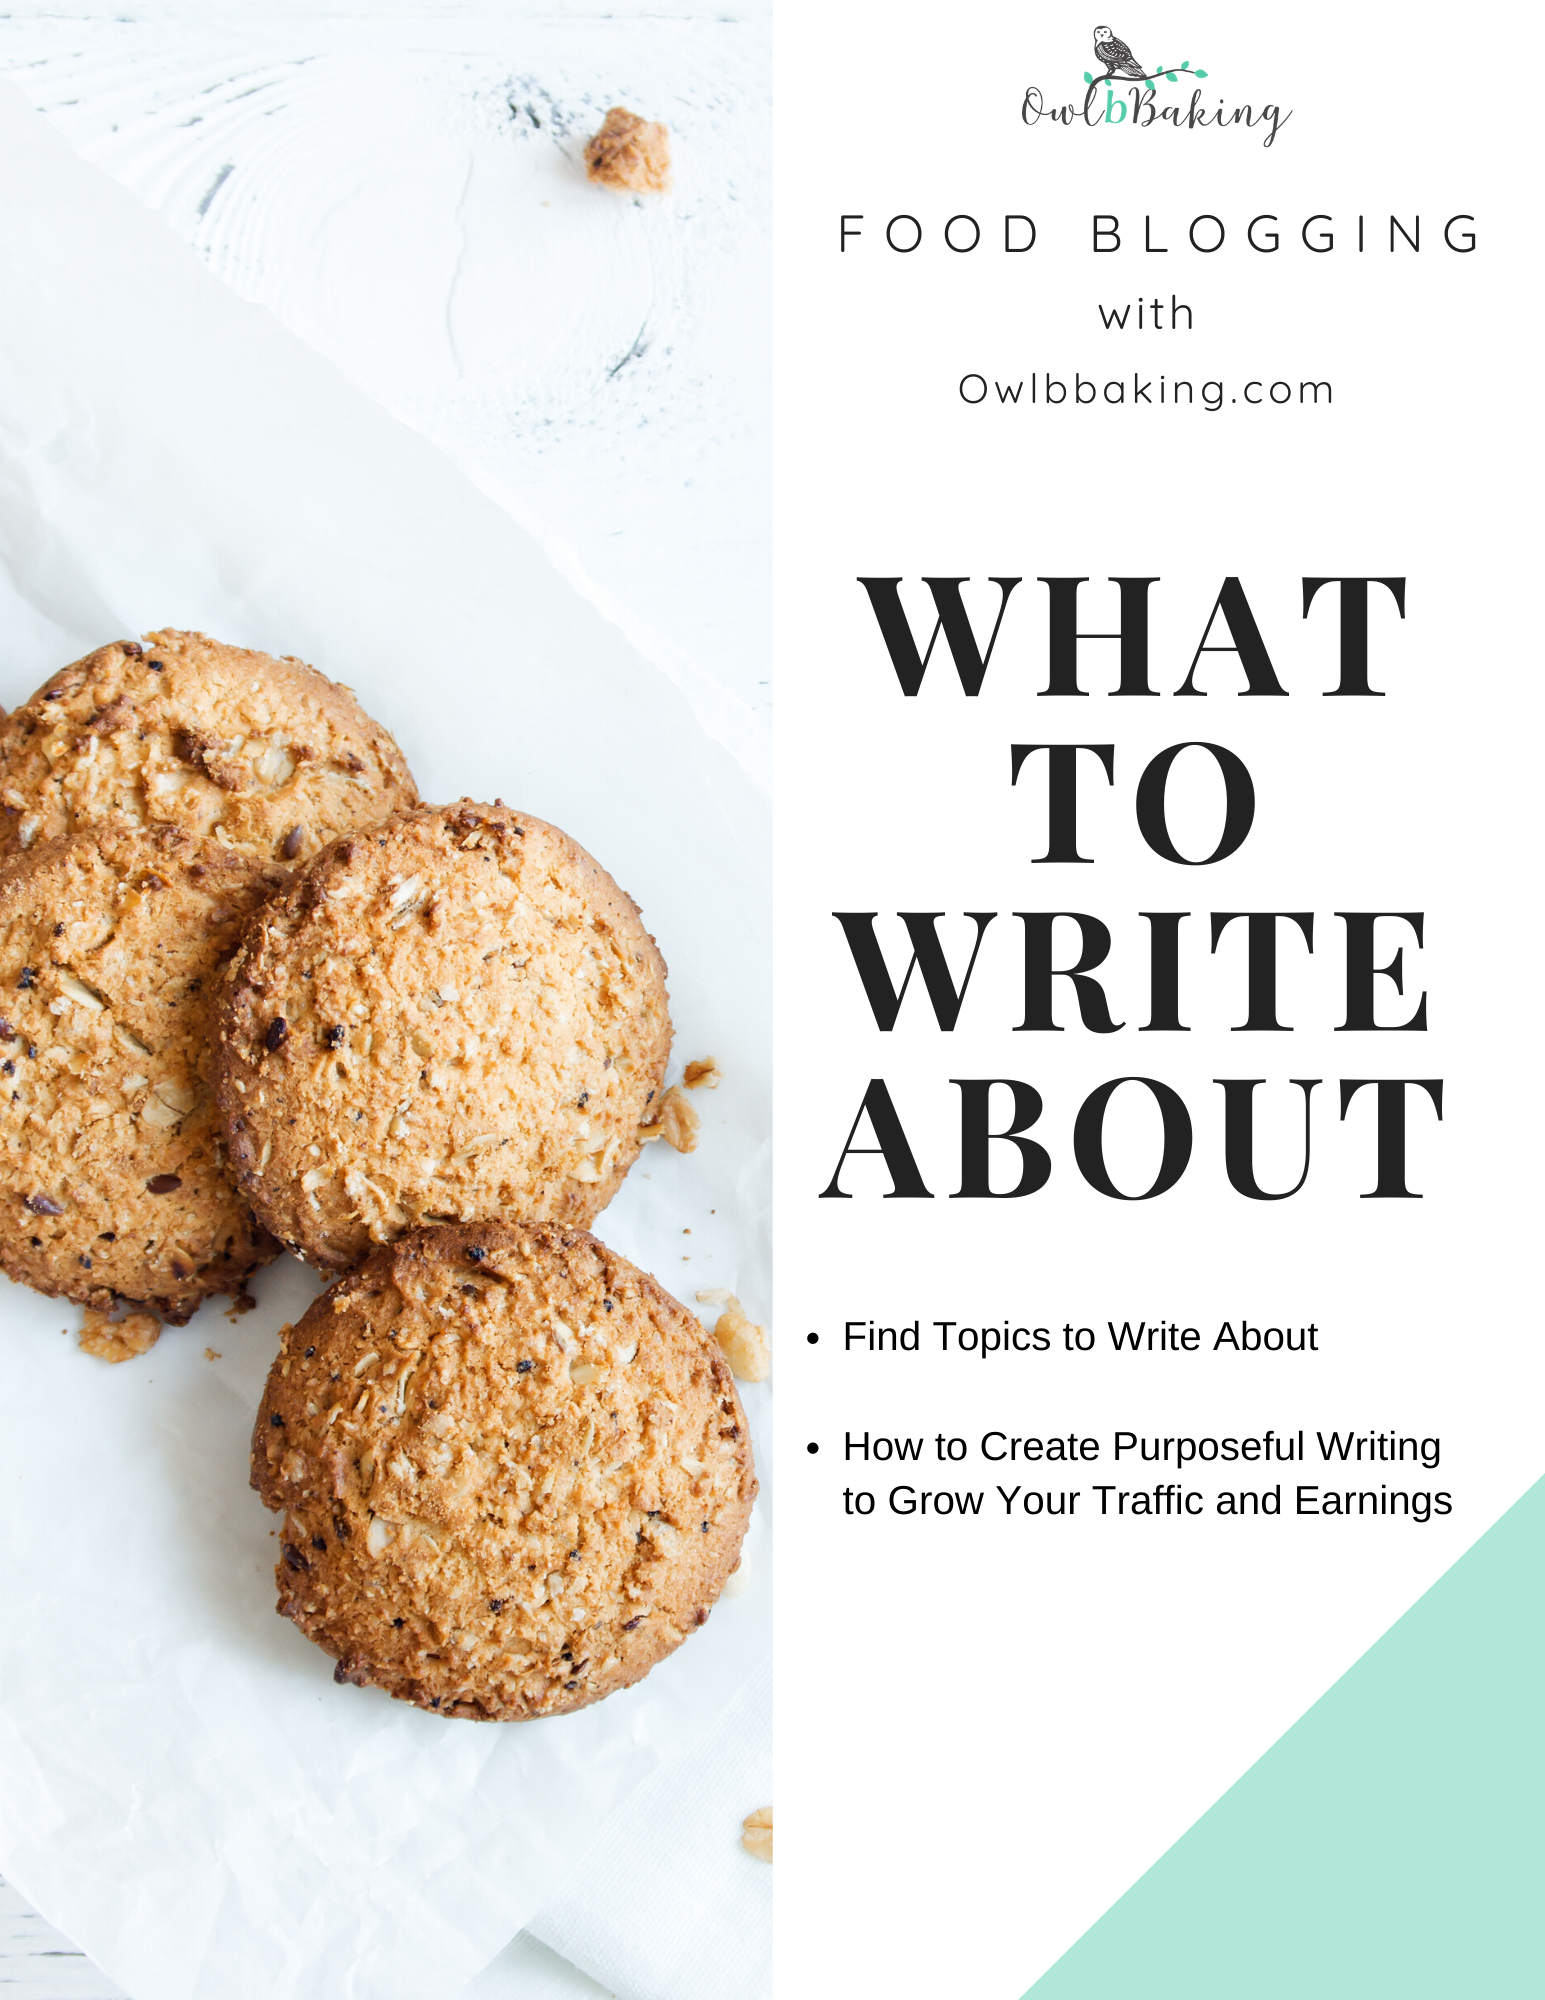 What to write about in a food blog post